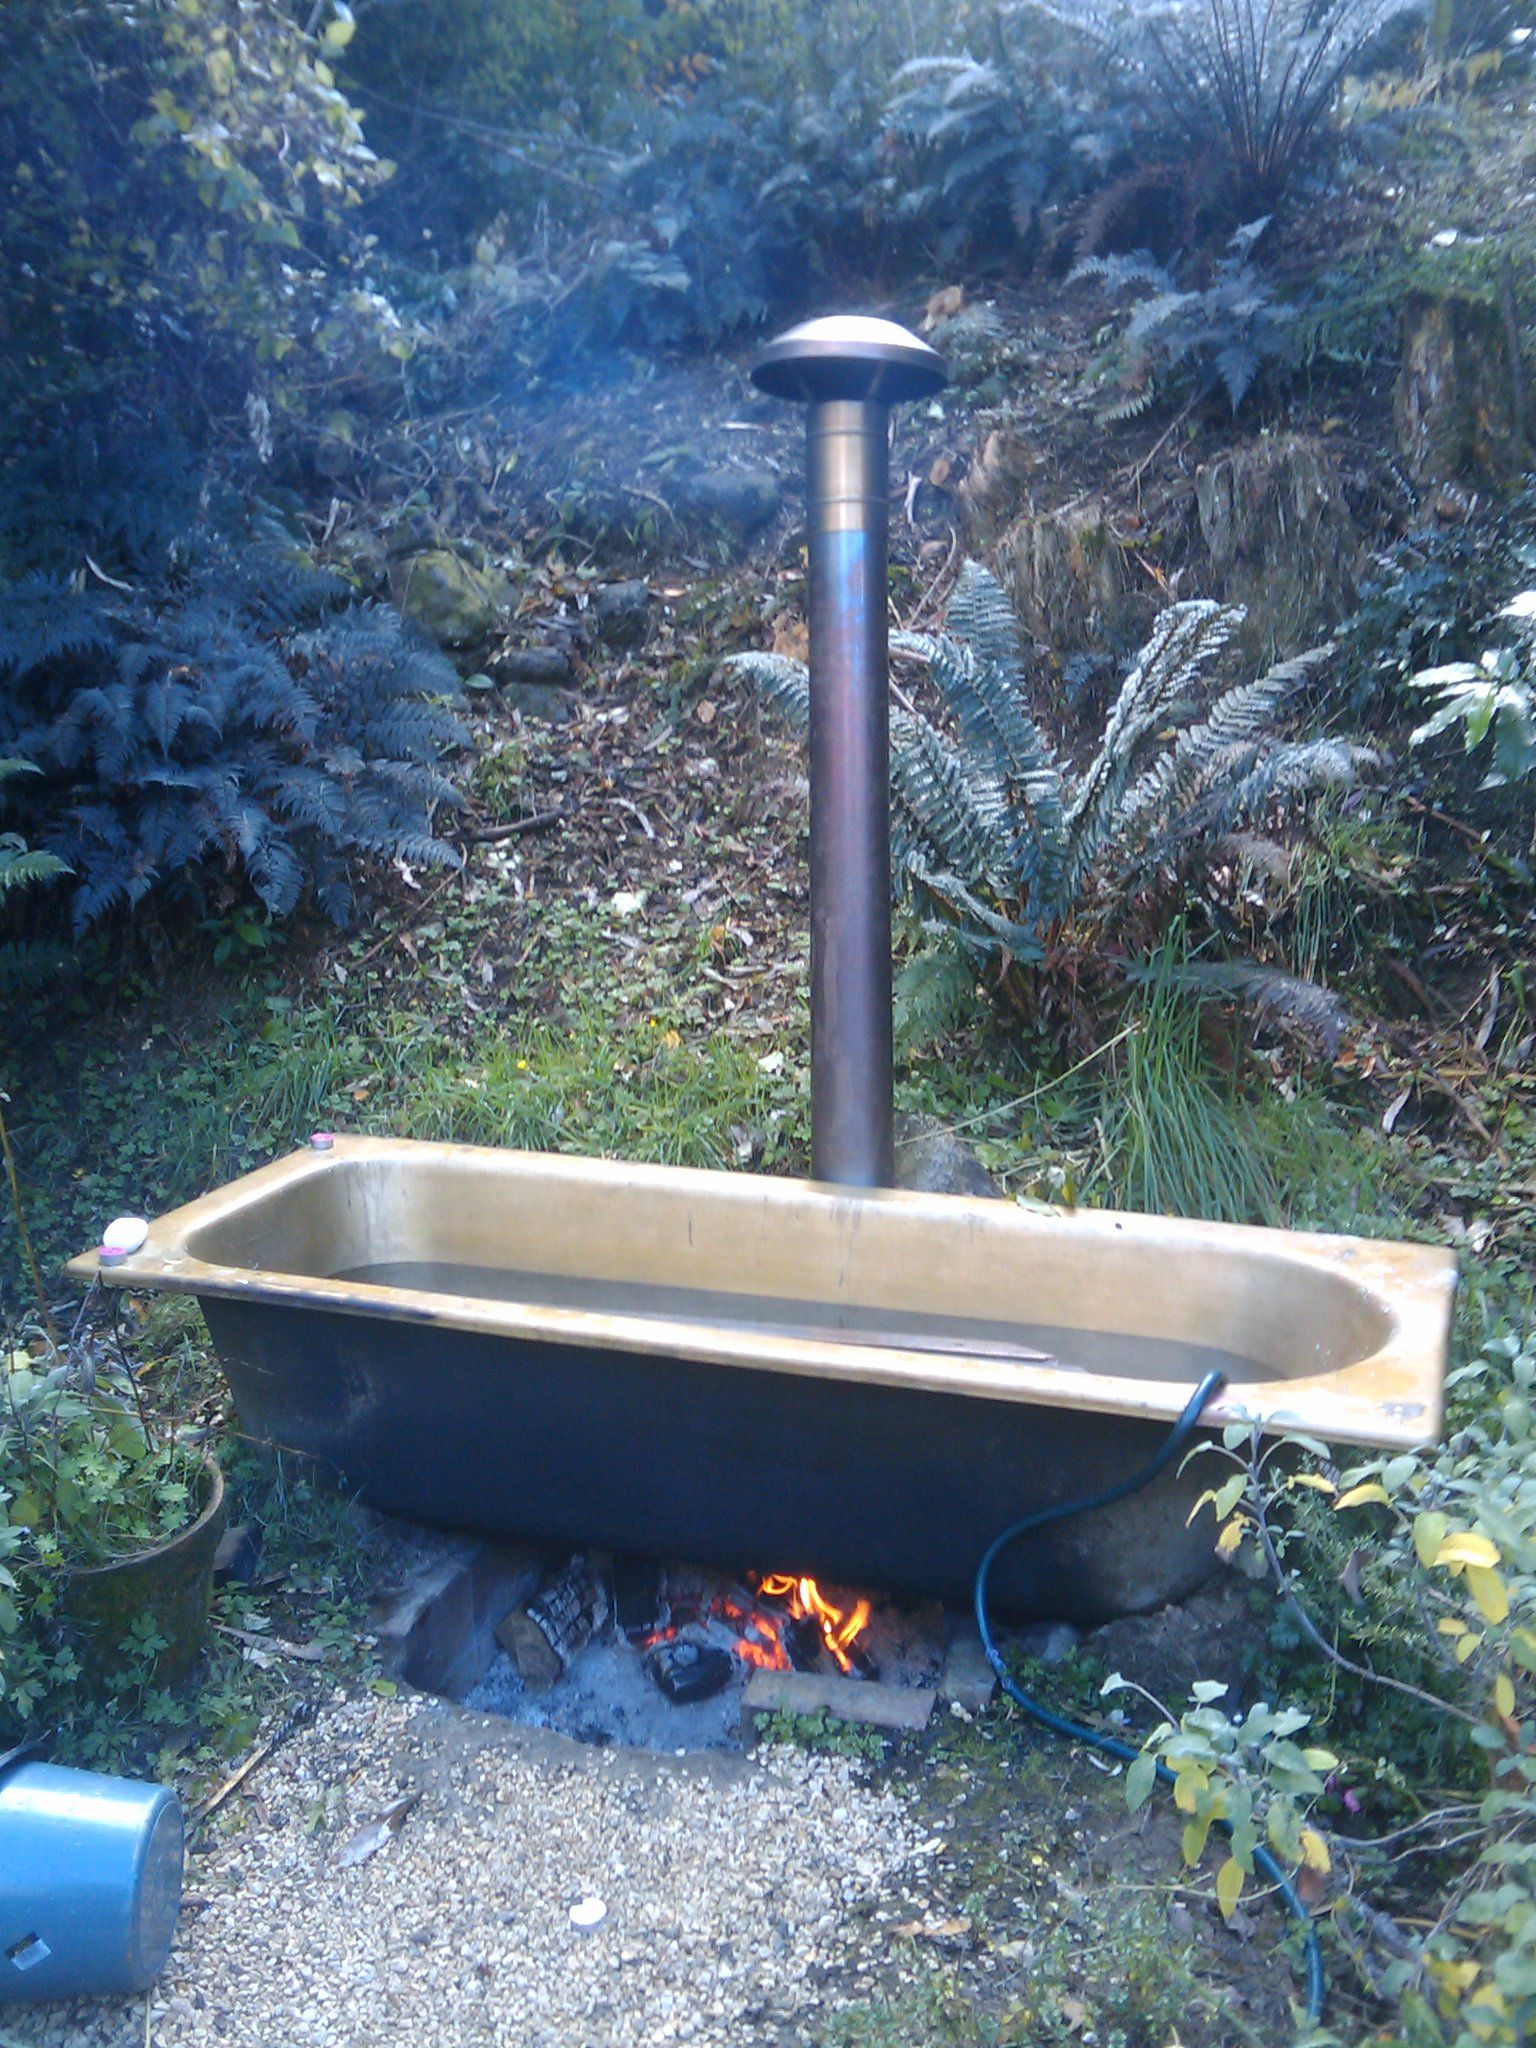 How cool! A fire underneath heats the water in the bath. A wooden ...